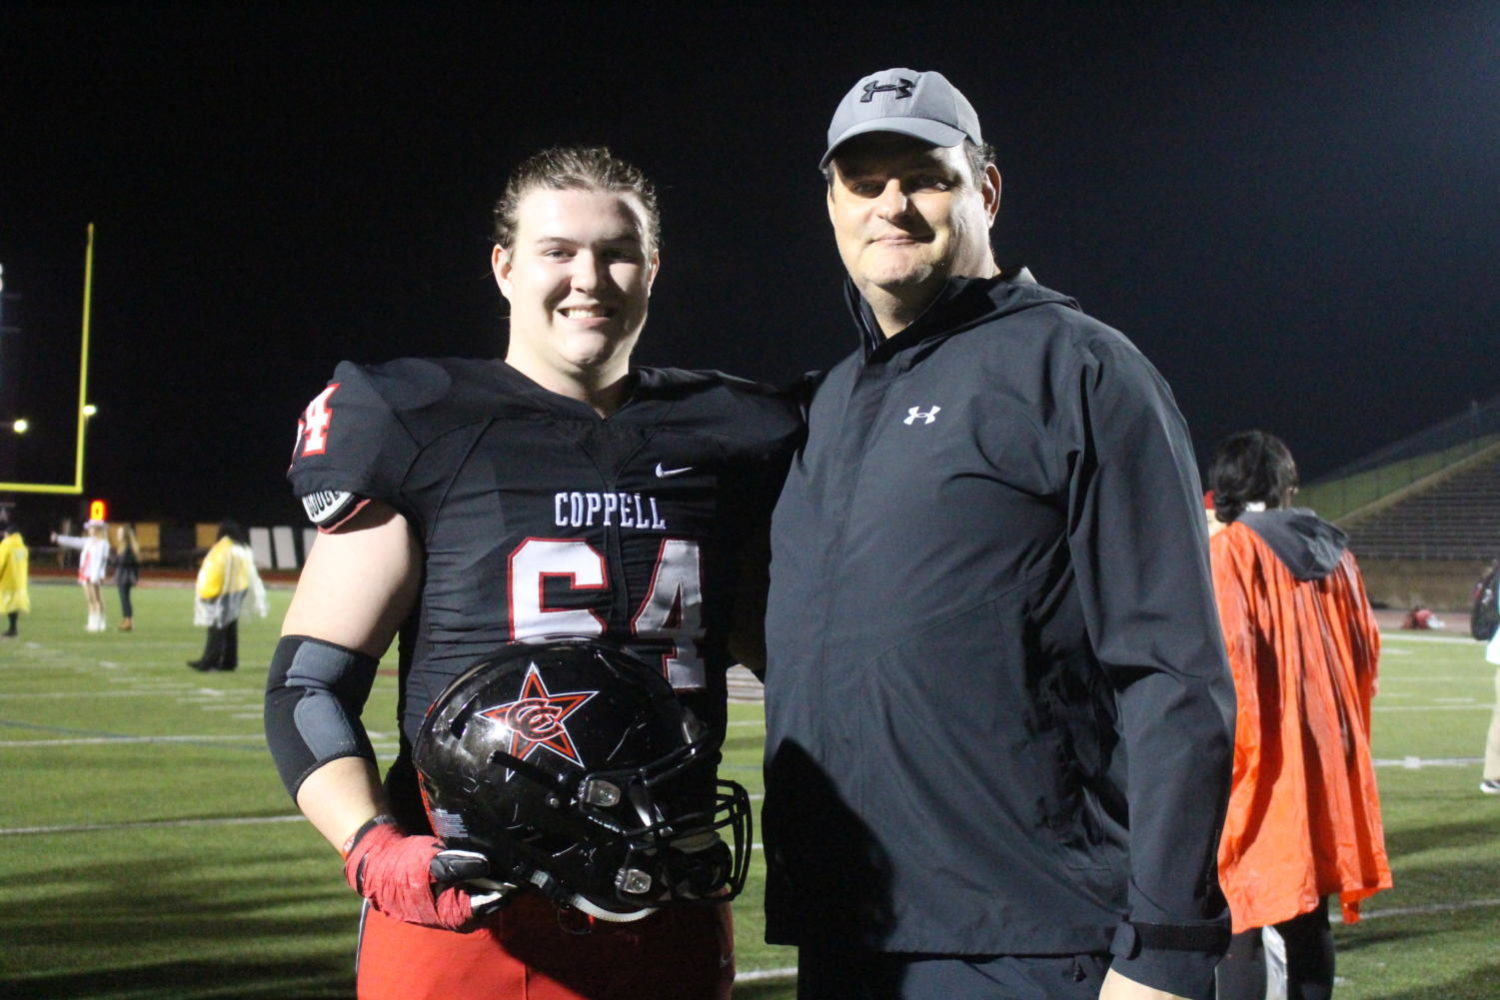 Coppell senior offensive lineman Trevor Stange is following in father's footsteps to play college football at Kansas State. Russ Stange played at Kansas State from 1987 to 1988.